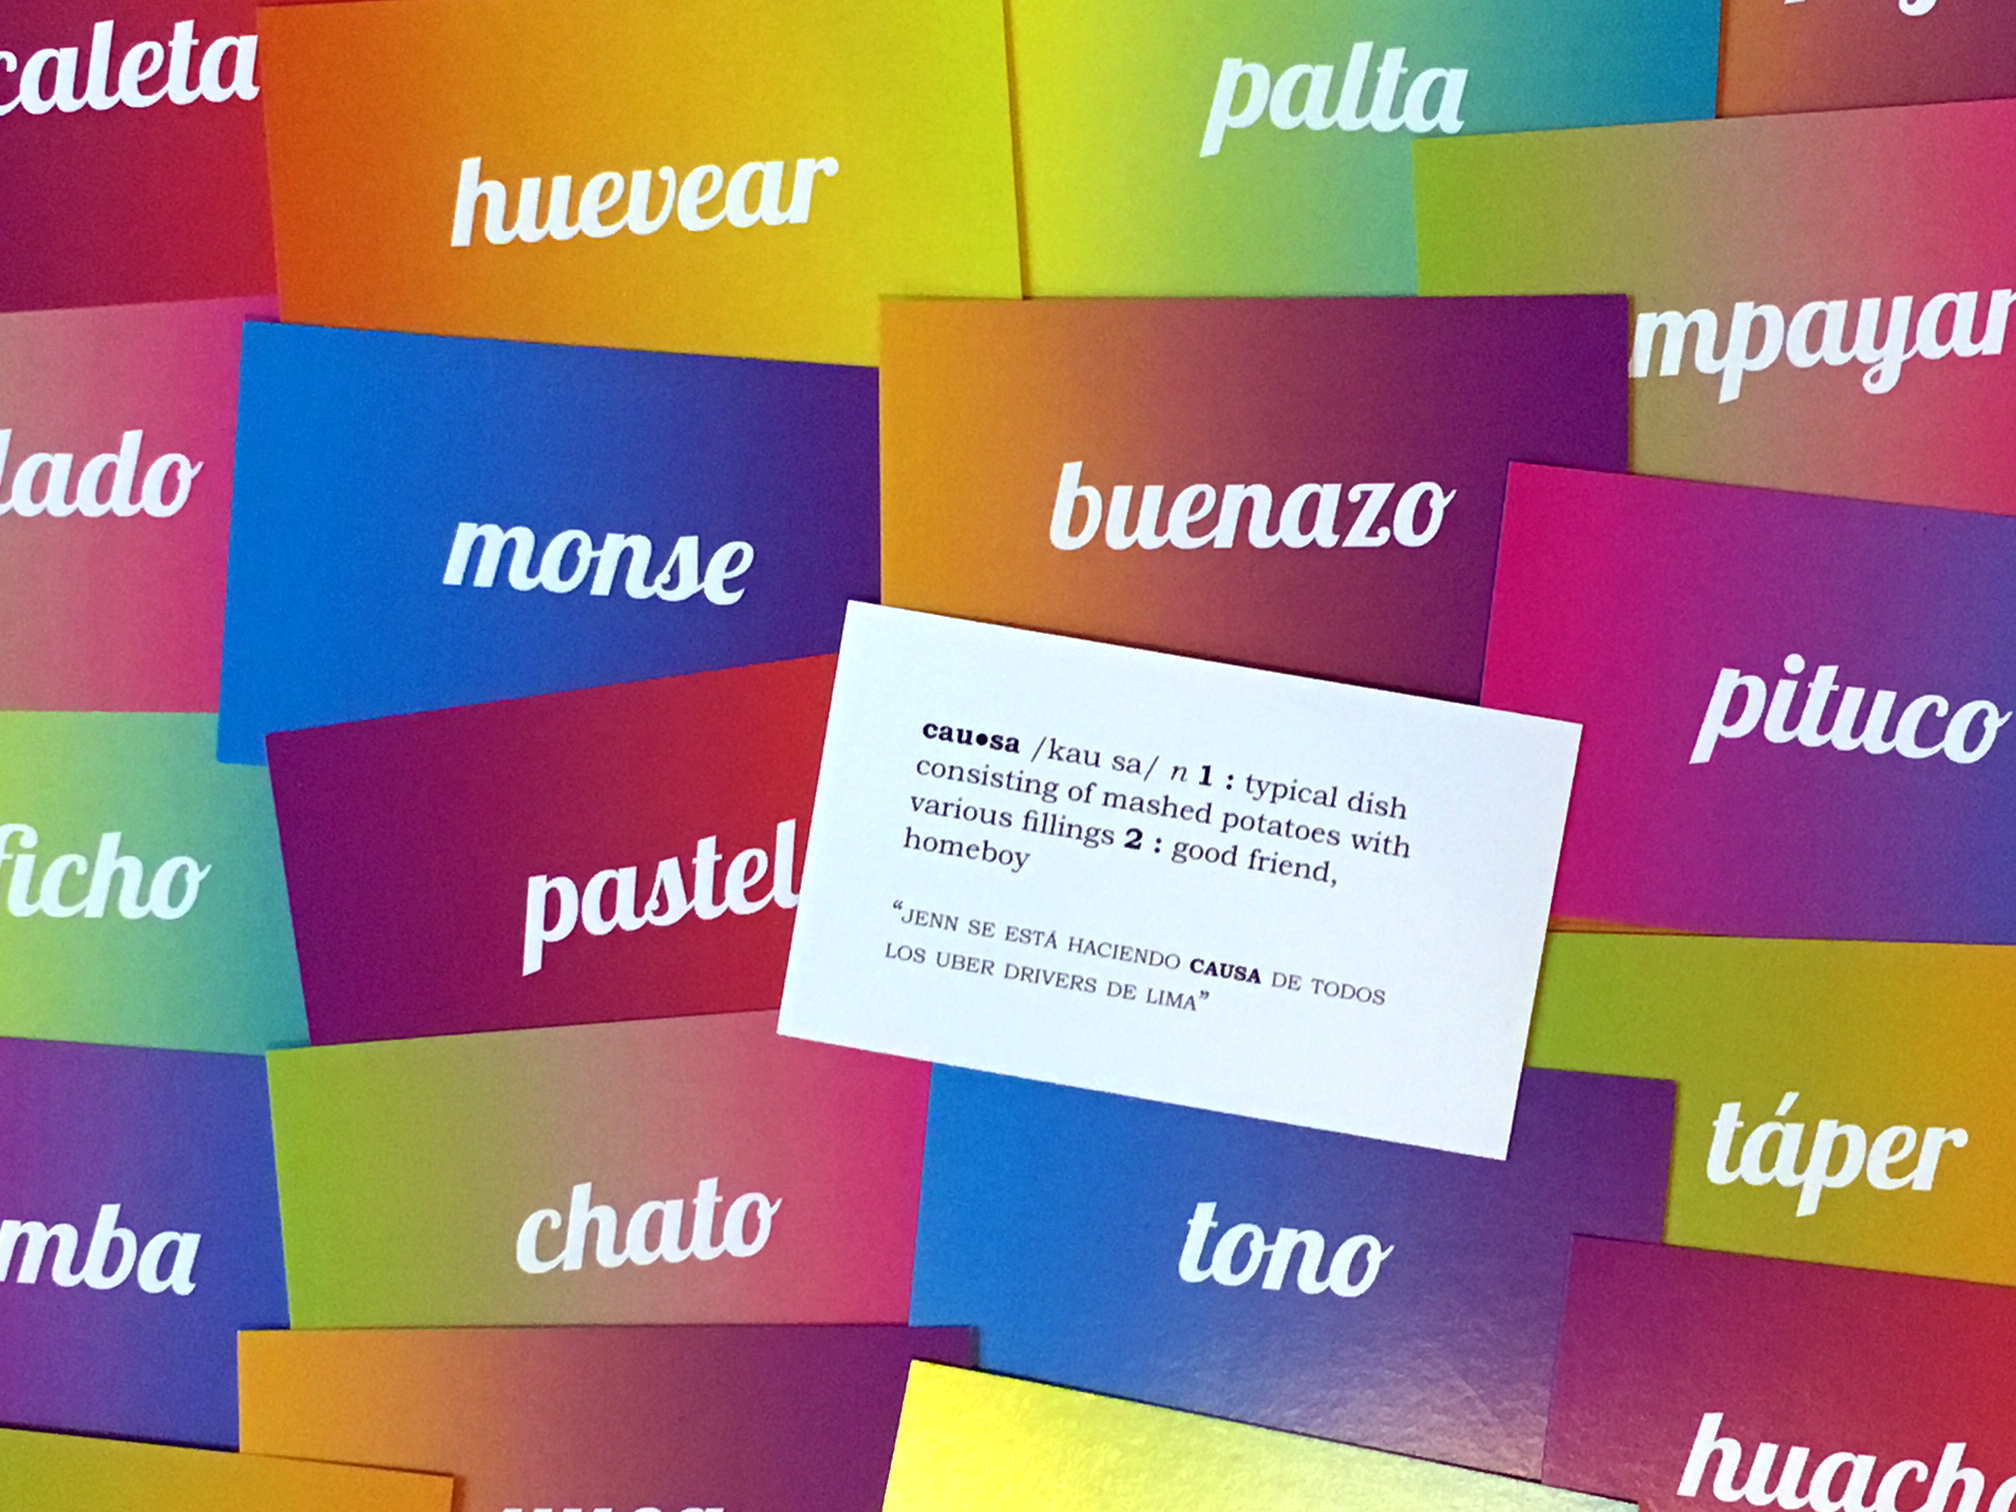 """Colorful flashcards bearing words such as """"pastel,"""" """"tono,"""" and """"buenazo"""" are arranged in a pile. In the center, one of the cards is turned face-up, displaying two possible definitions of the word """"causa"""": 1.) """"a typical dish consisting of mashed potatoes with various fillings,"""" or 2.) """"a good friend, homeboy"""""""